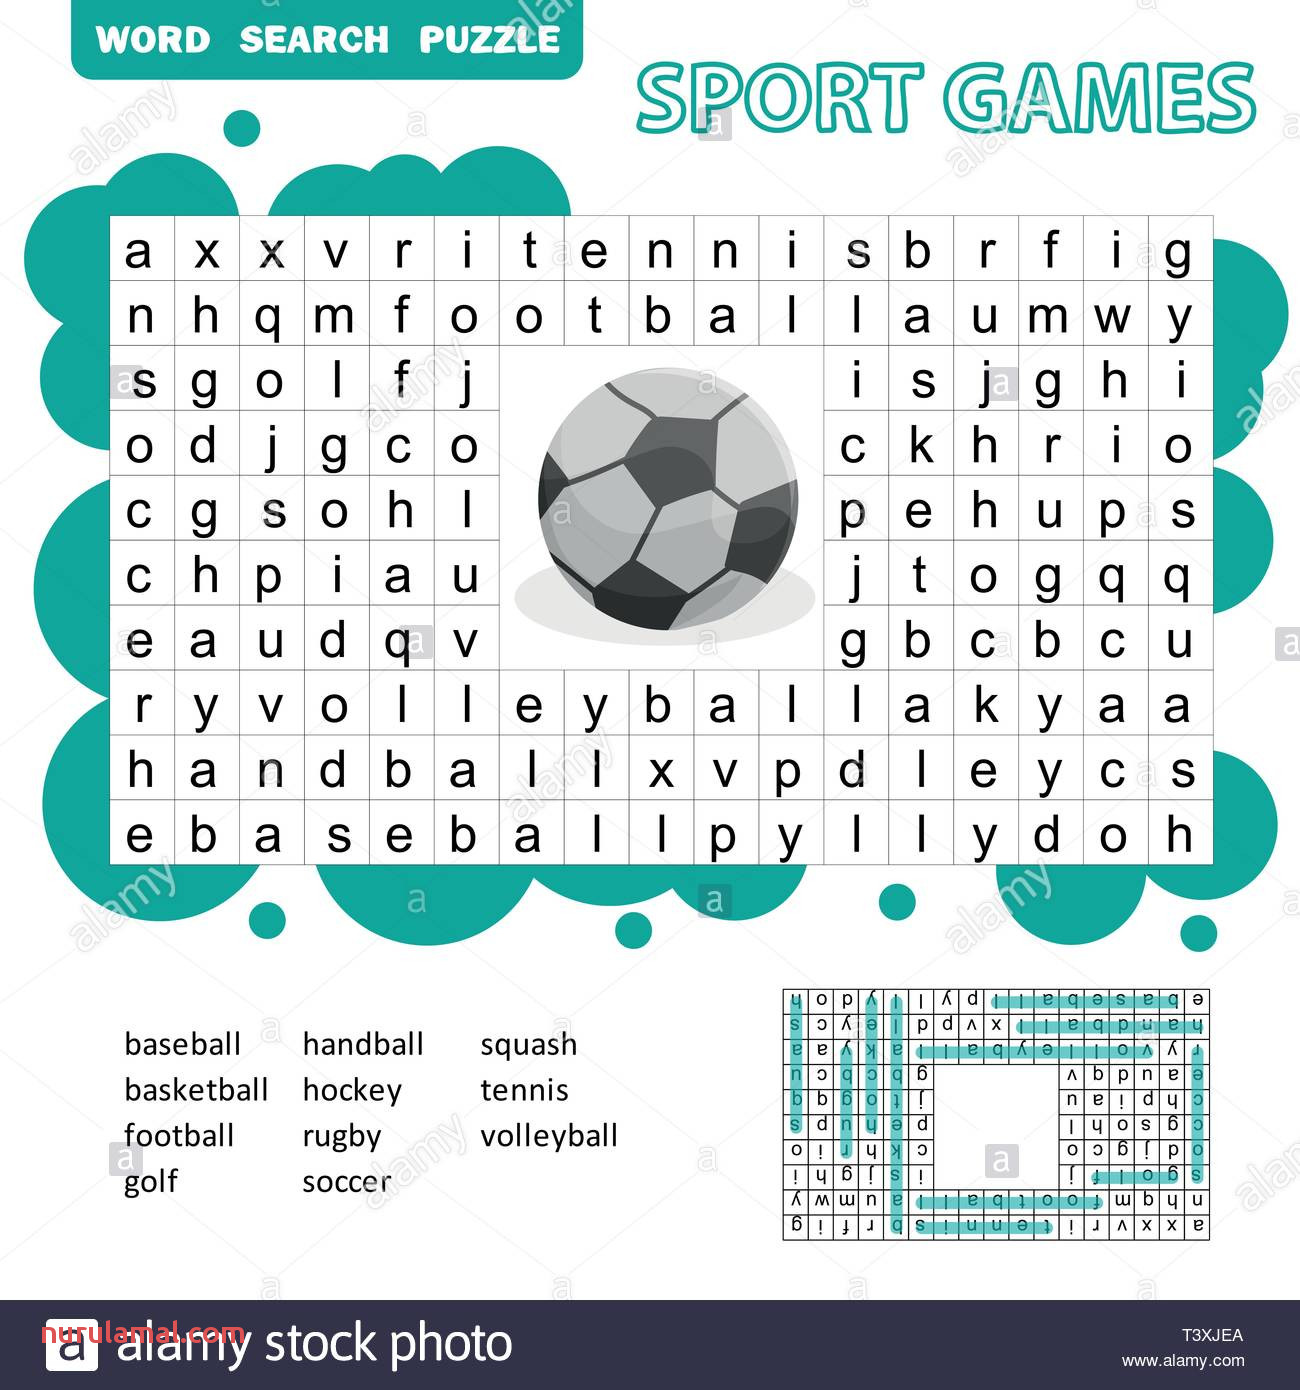 sport games themed word search puzzle for kids answer included fun education game for kids preschool worksheet activity vector illustration T3XJEA